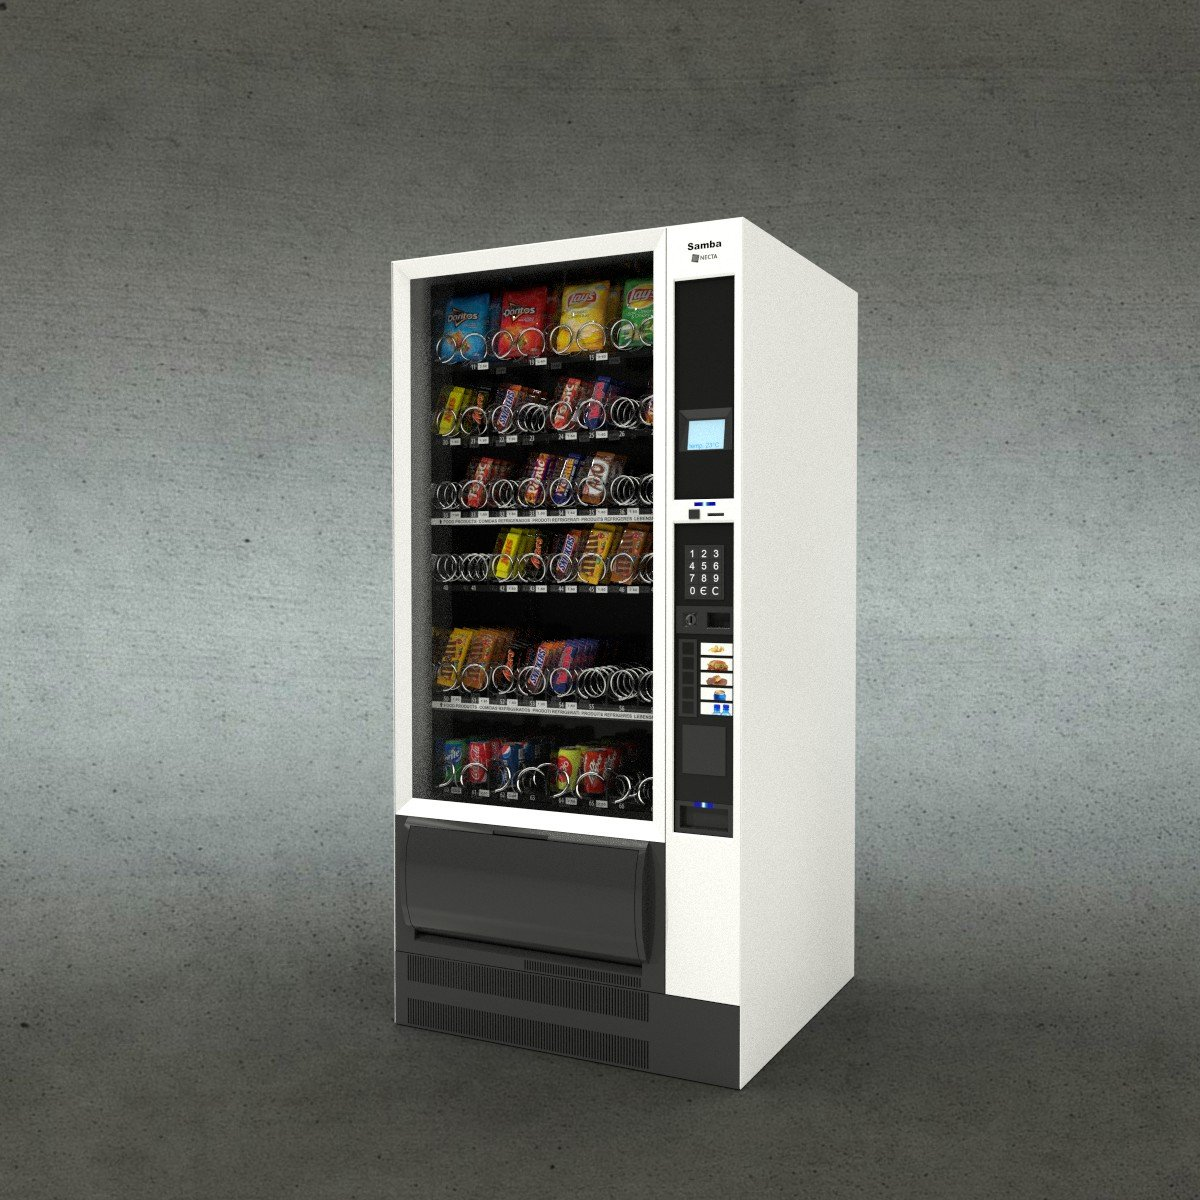 Best Vending Machines To Own 2020